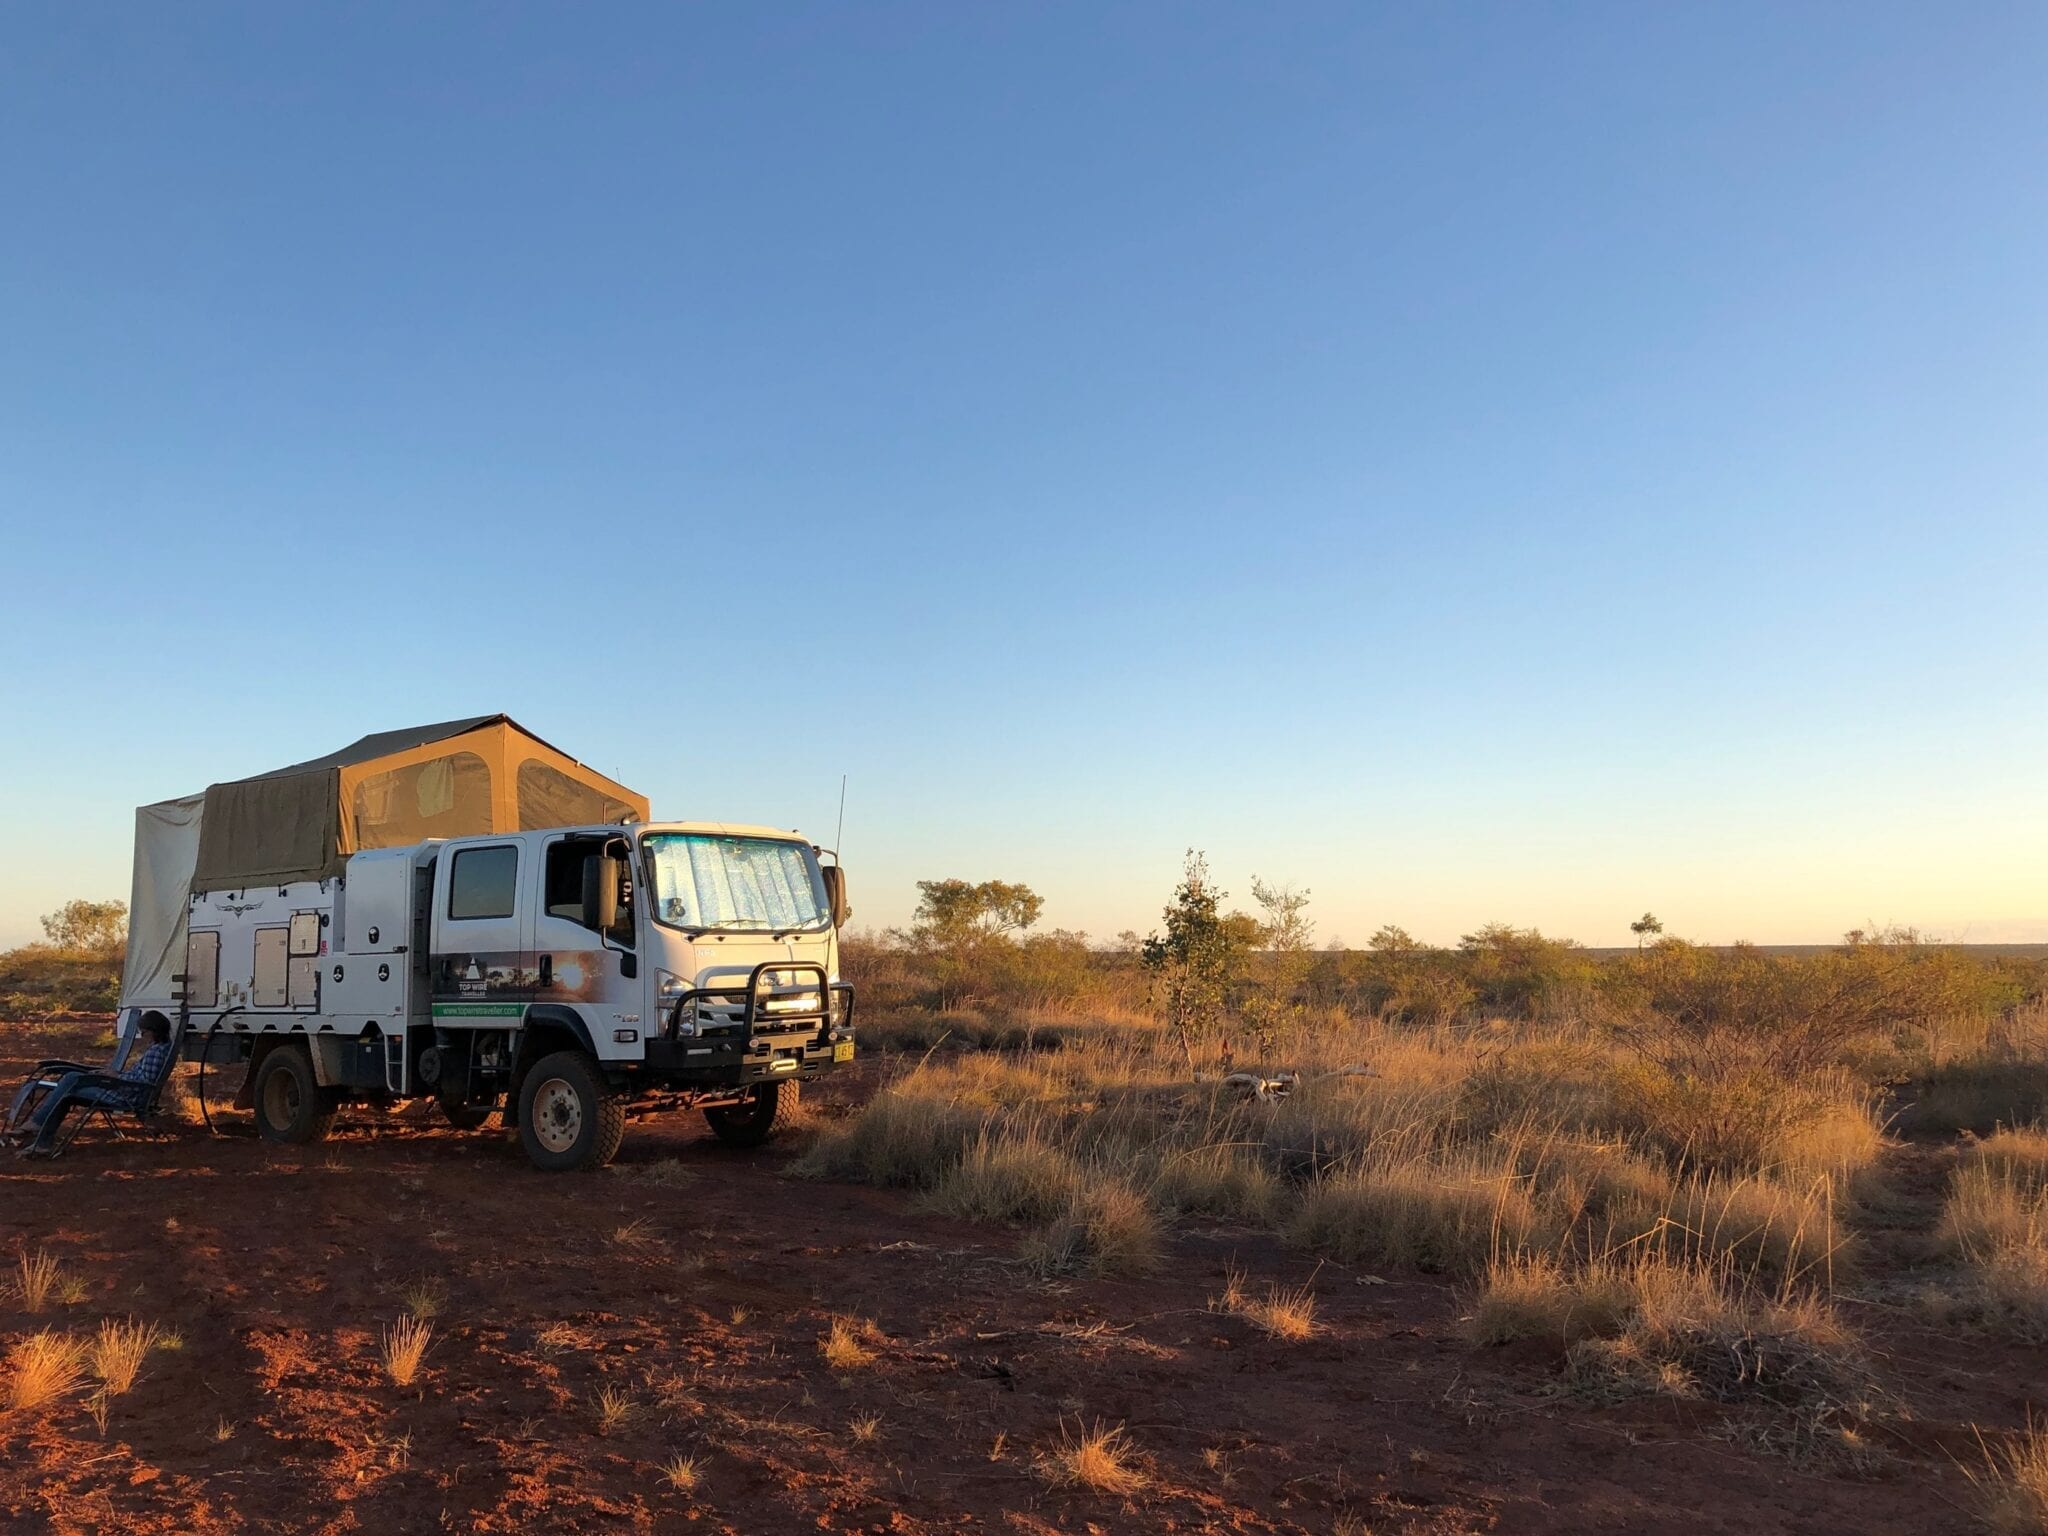 Camped in the Tanami Desert beside Lajamanu Road.